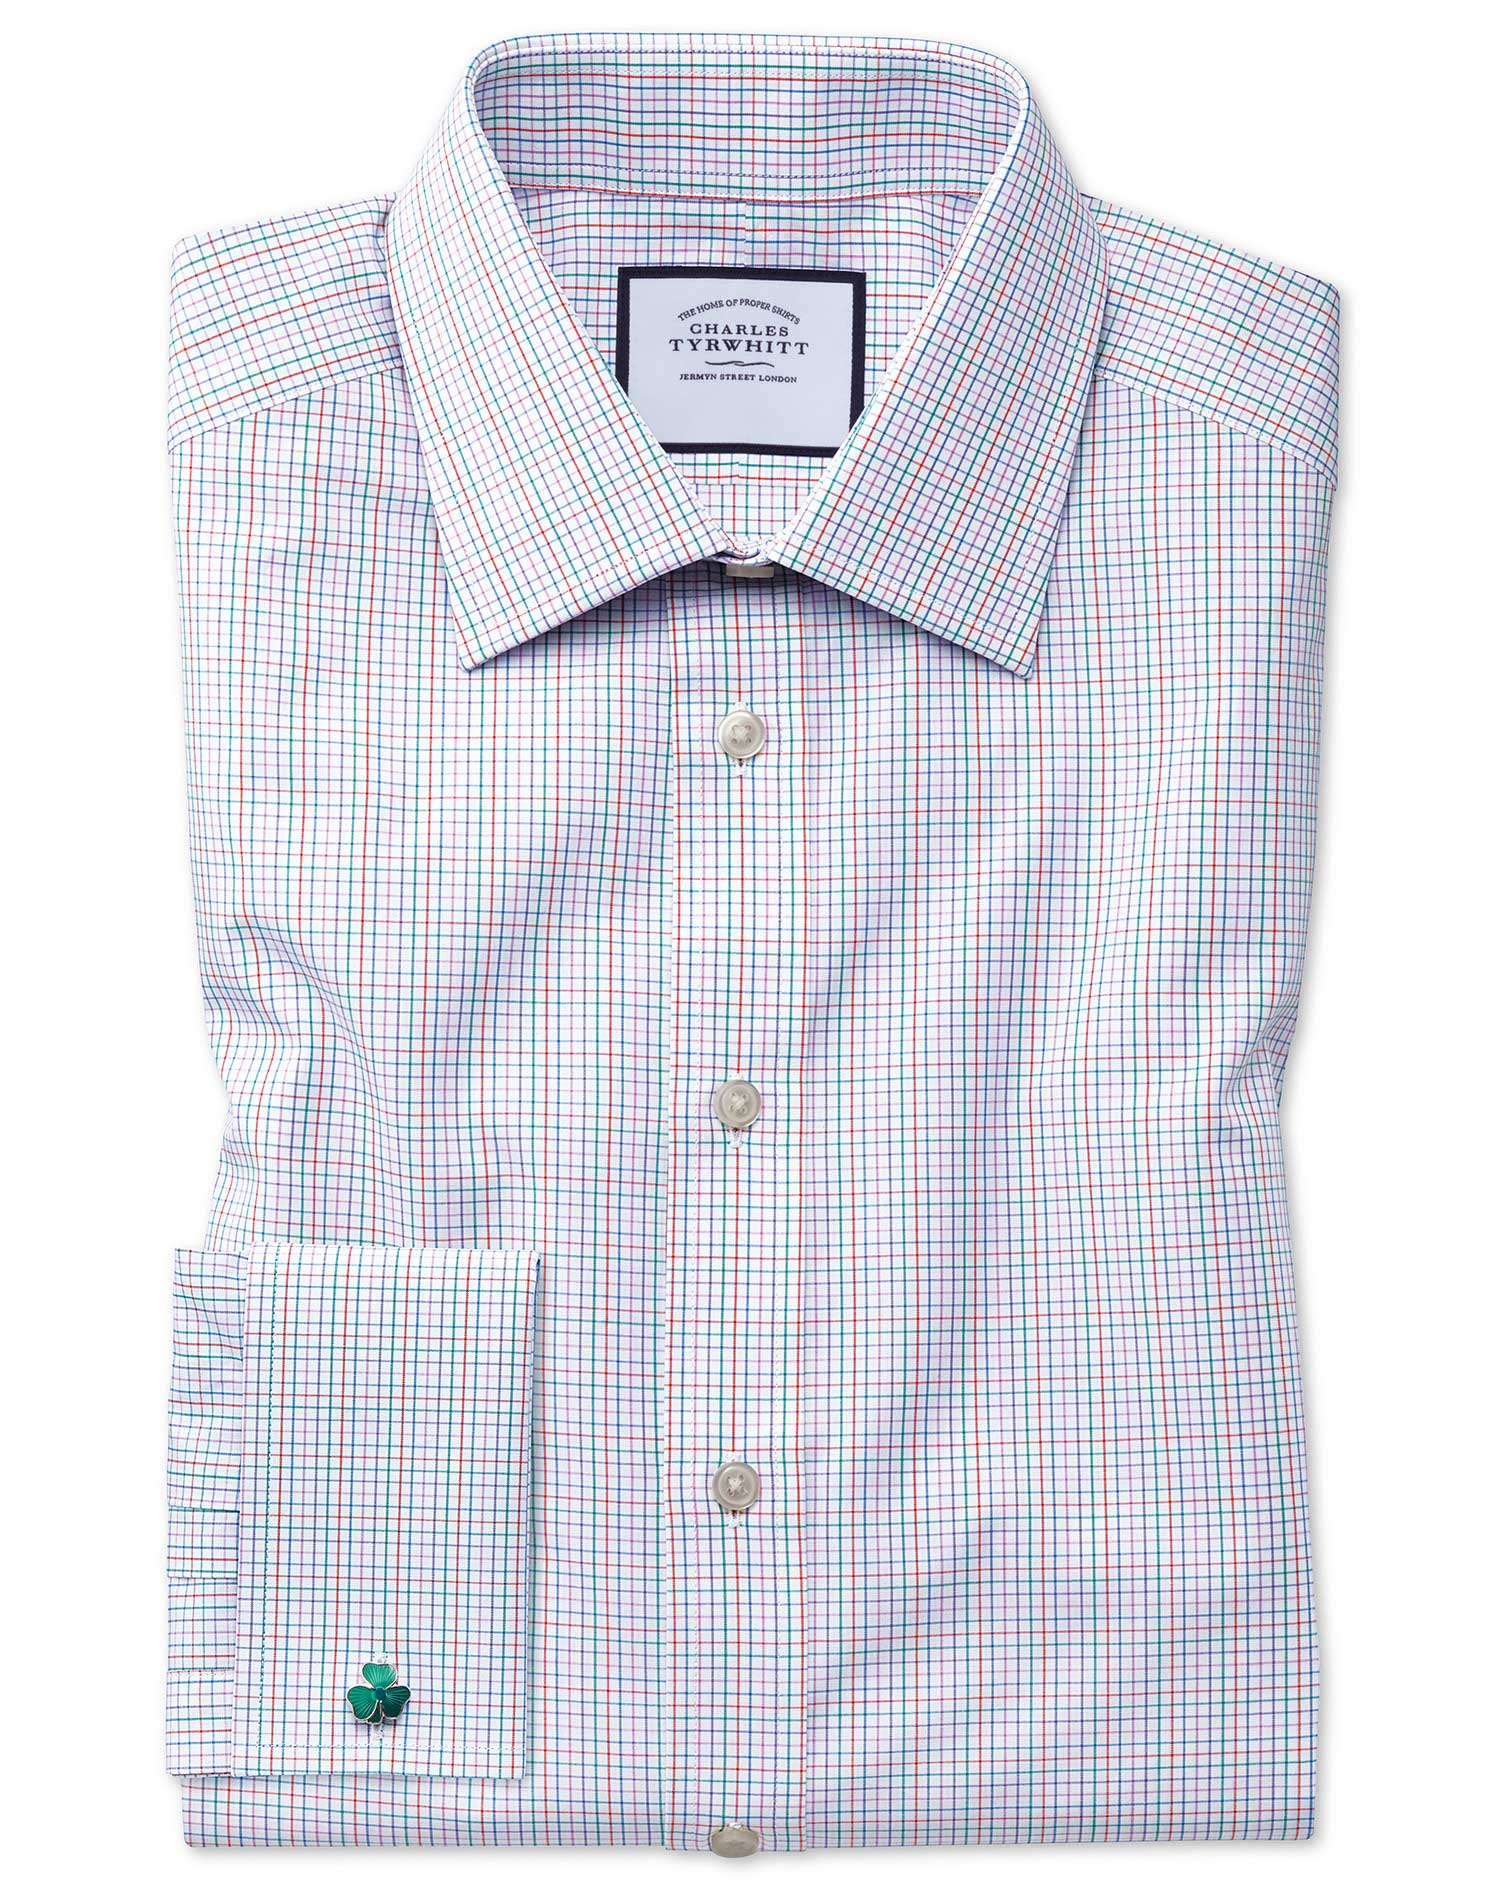 Classic Fit Pink Multi Check Egyptian Cotton Formal Shirt Double Cuff Size 16.5/35 by Charles Tyrwhi